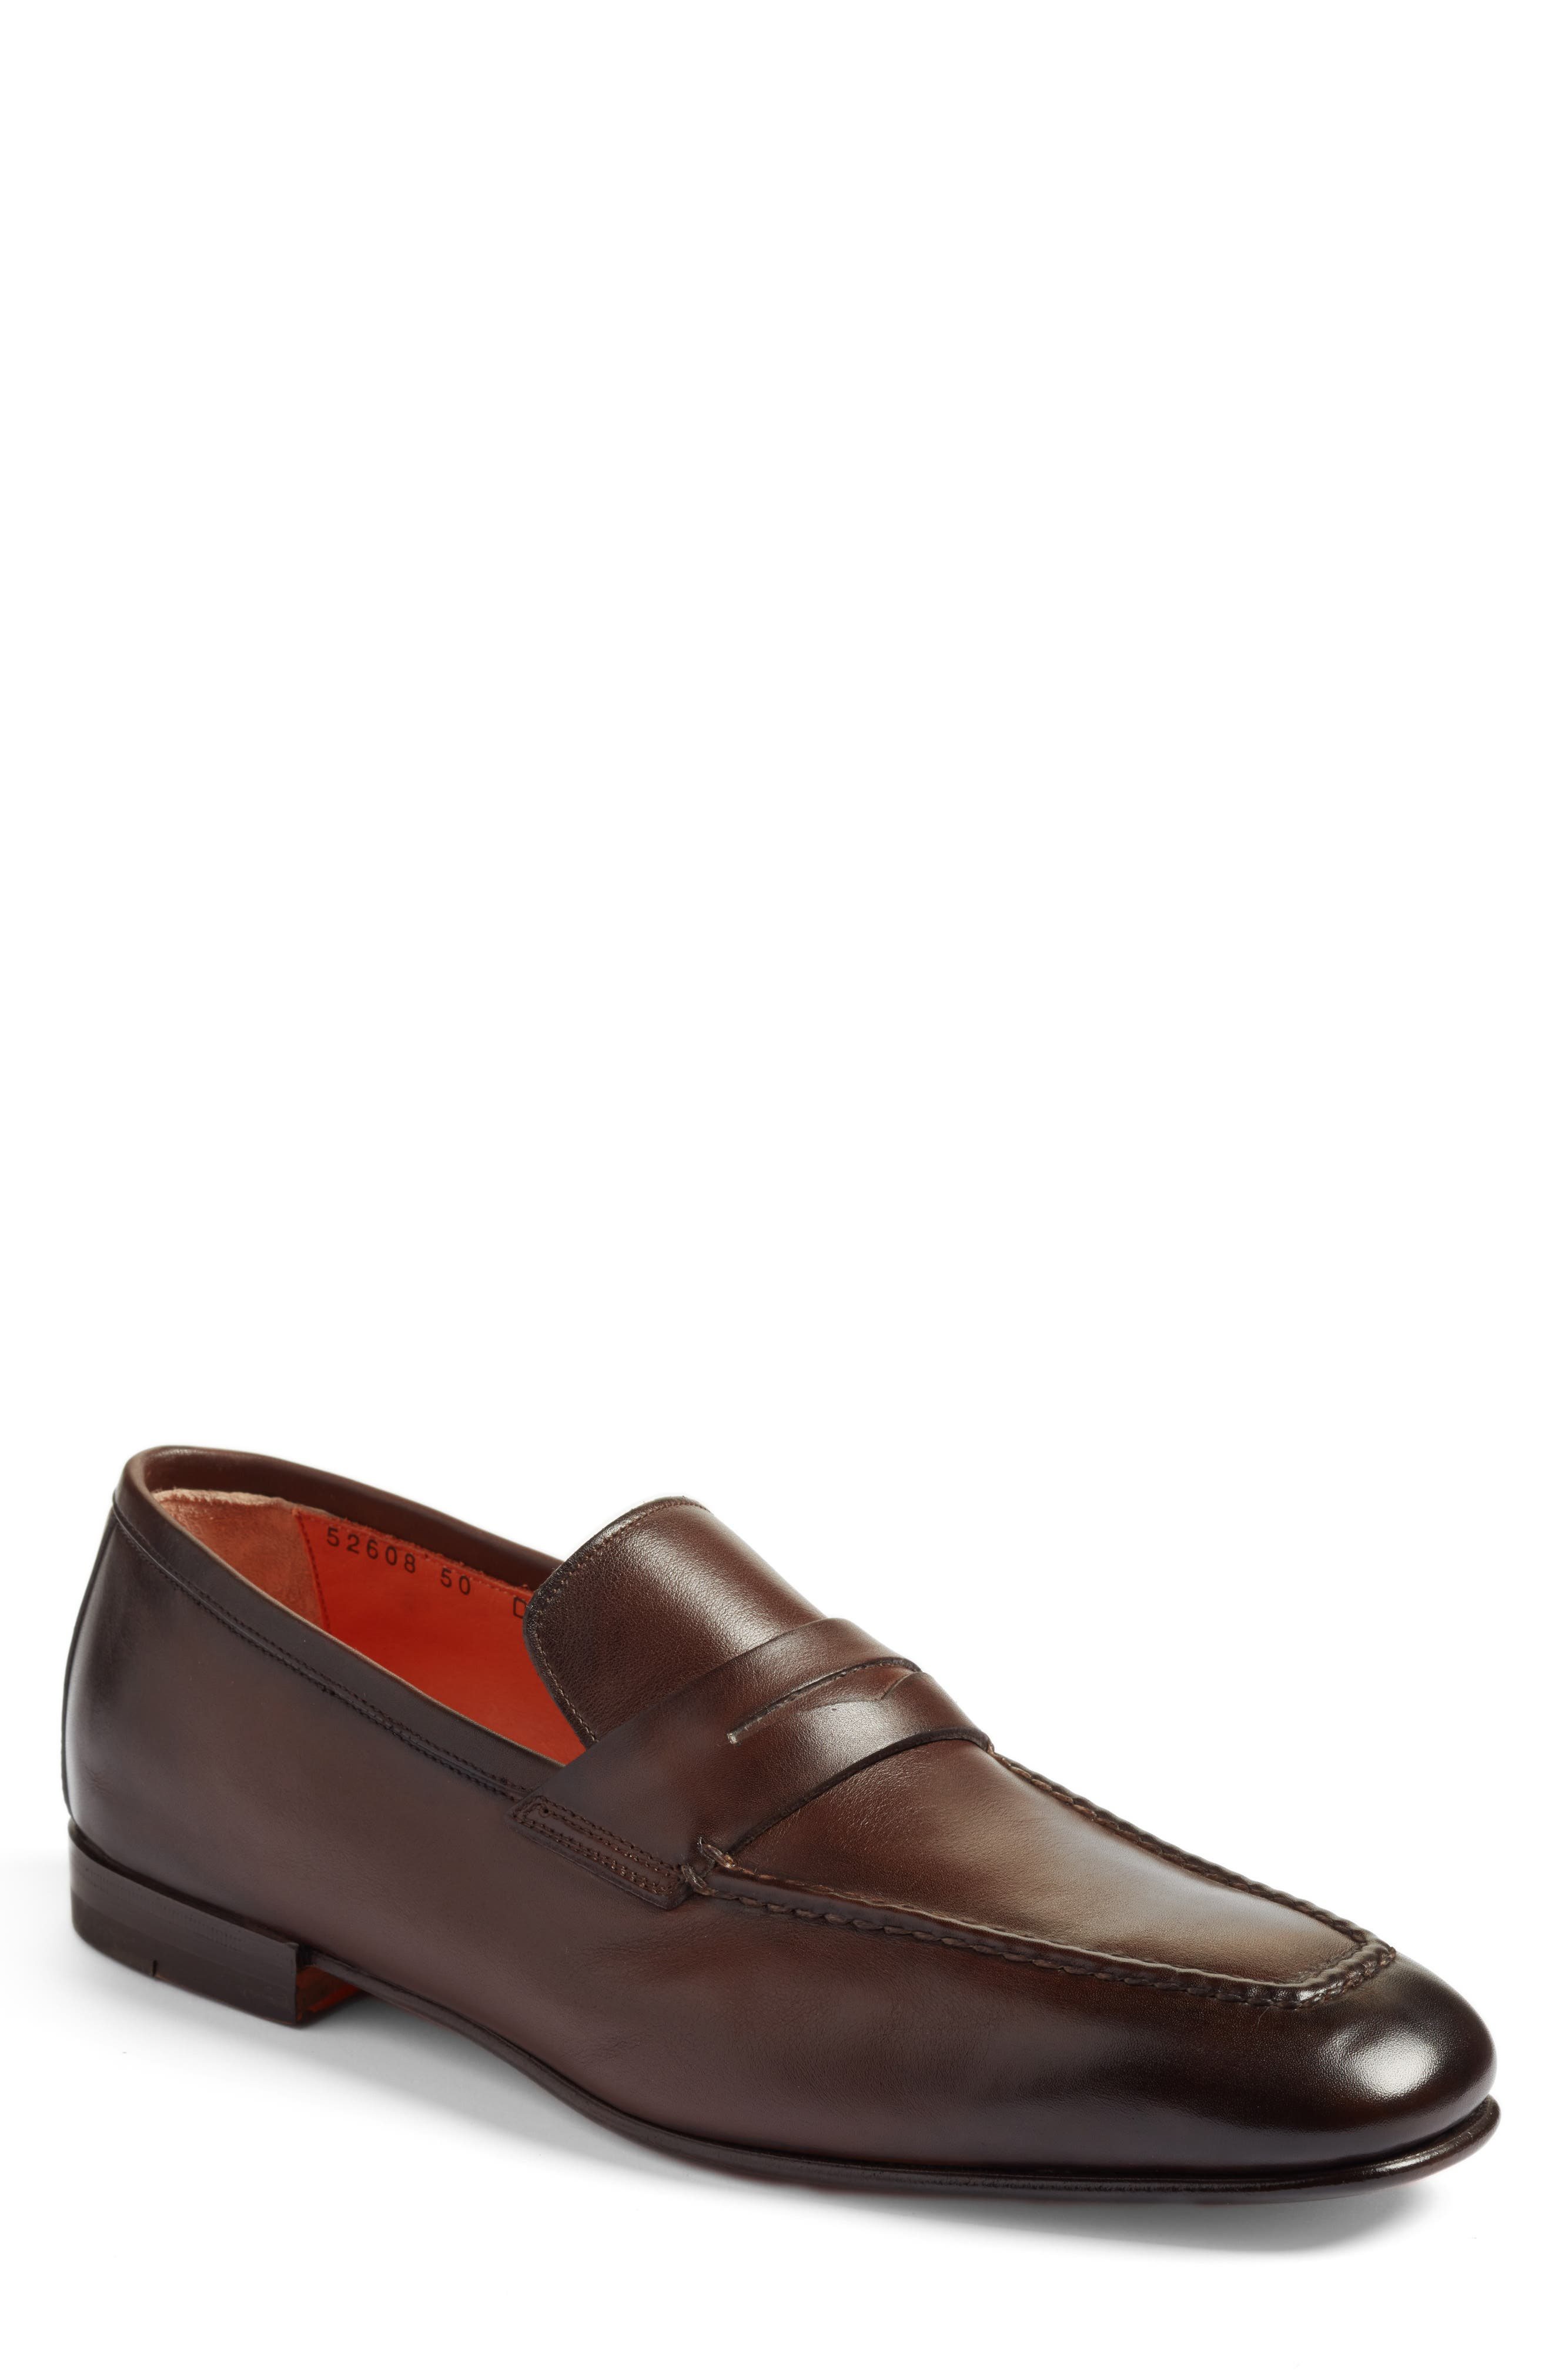 Fox Packable Penny Loafer,                             Main thumbnail 1, color,                             DARK BROWN LEATHER